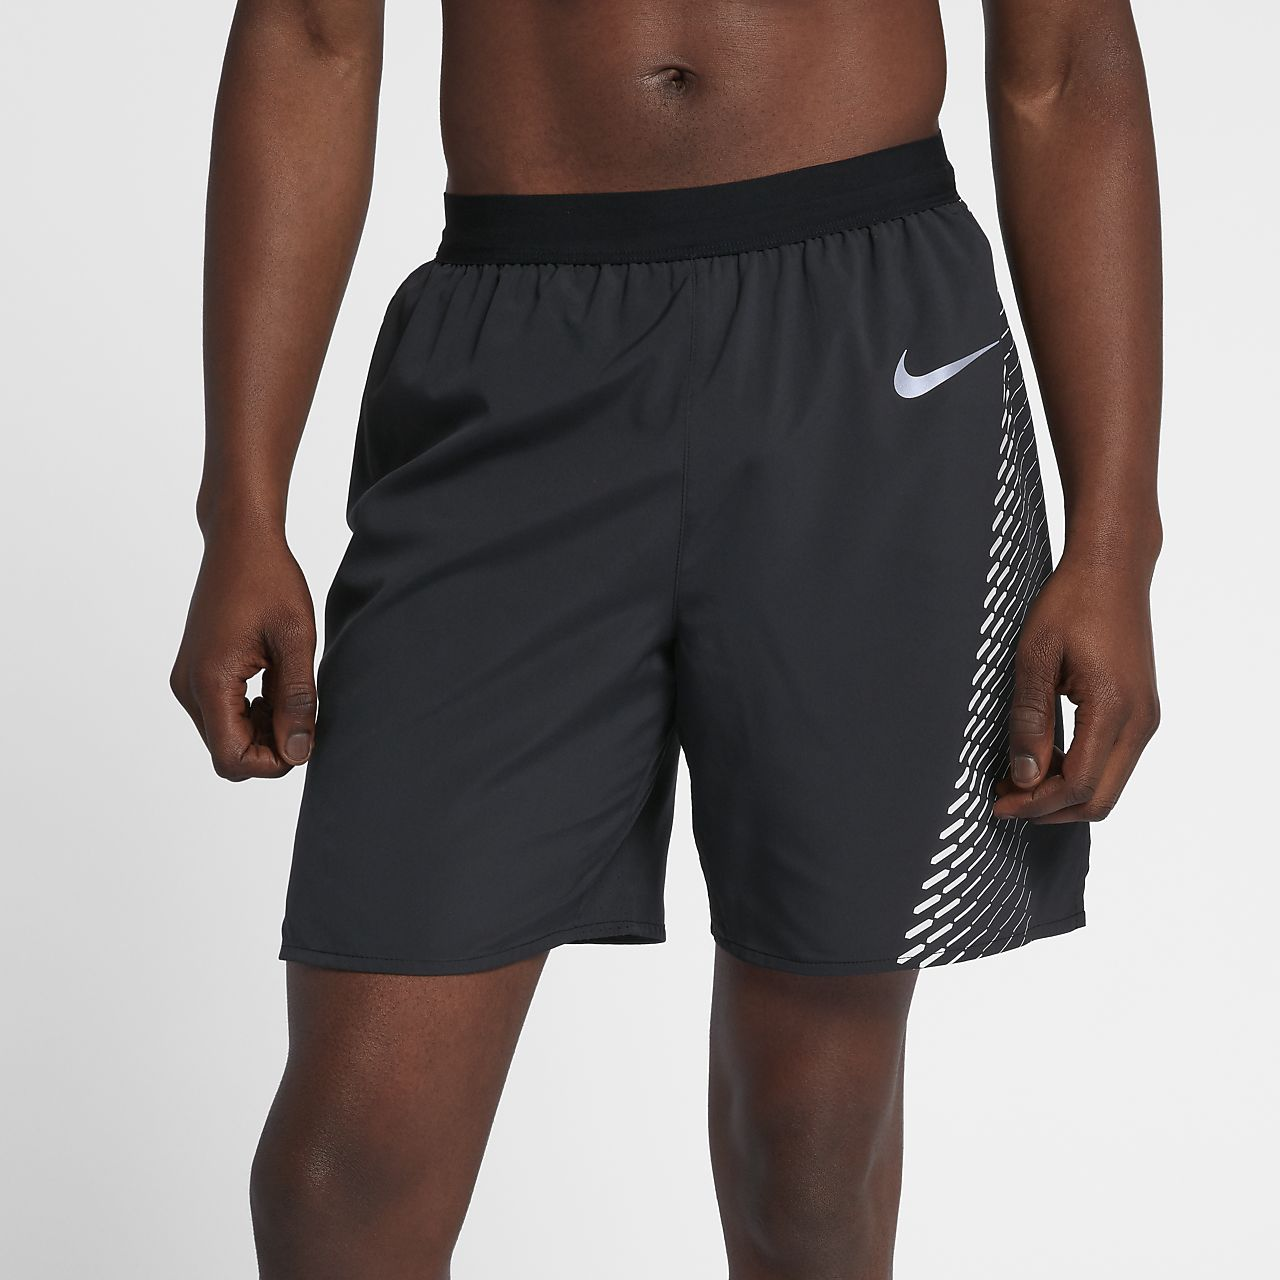 buy online 64288 713a5 Lined Running Shorts Nike Distance Men s 7